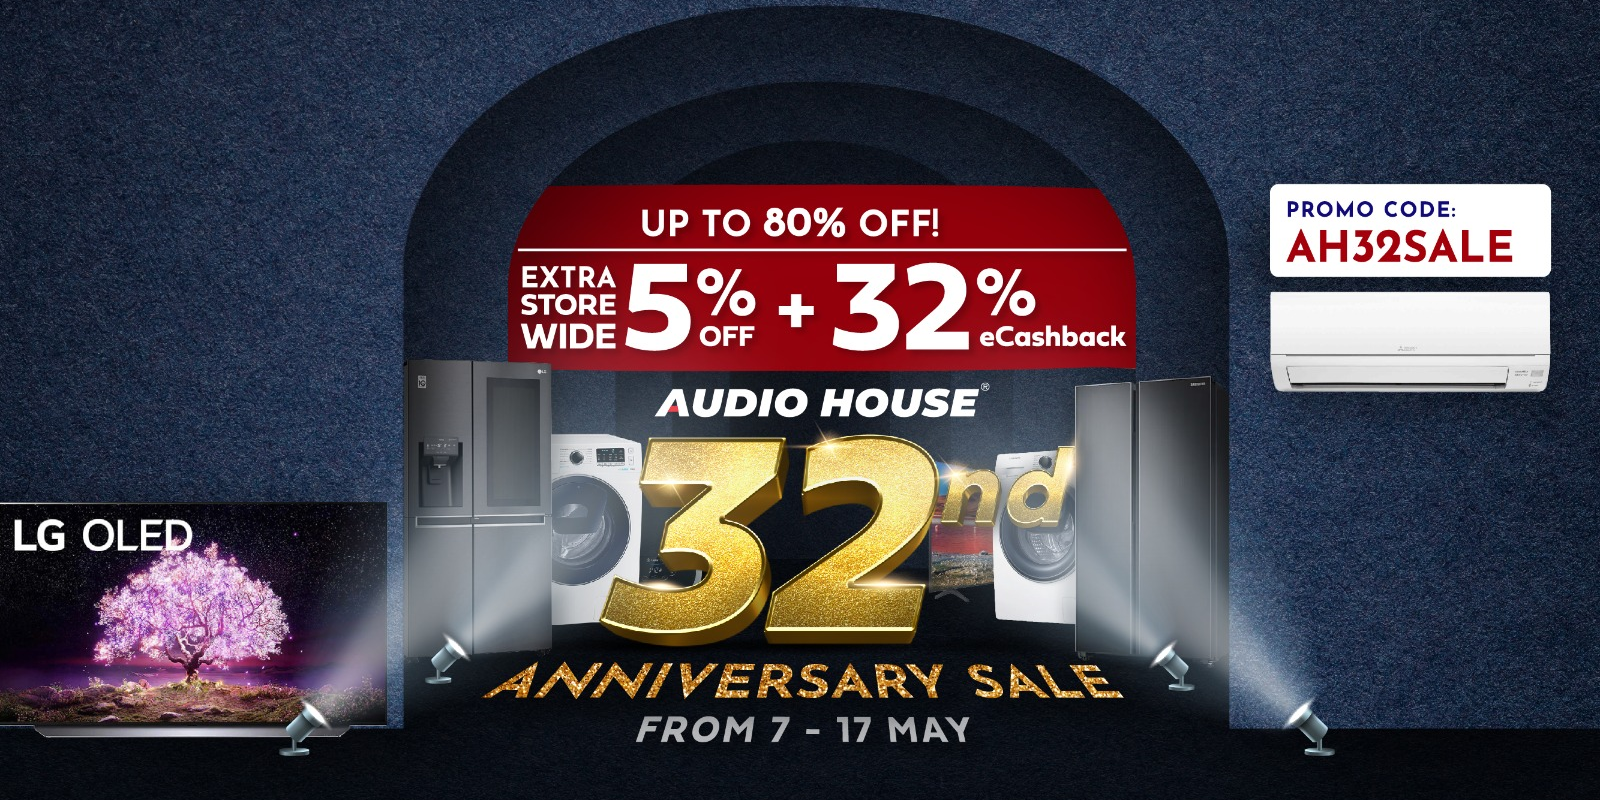 Audio House 32nd Anniversary Sale